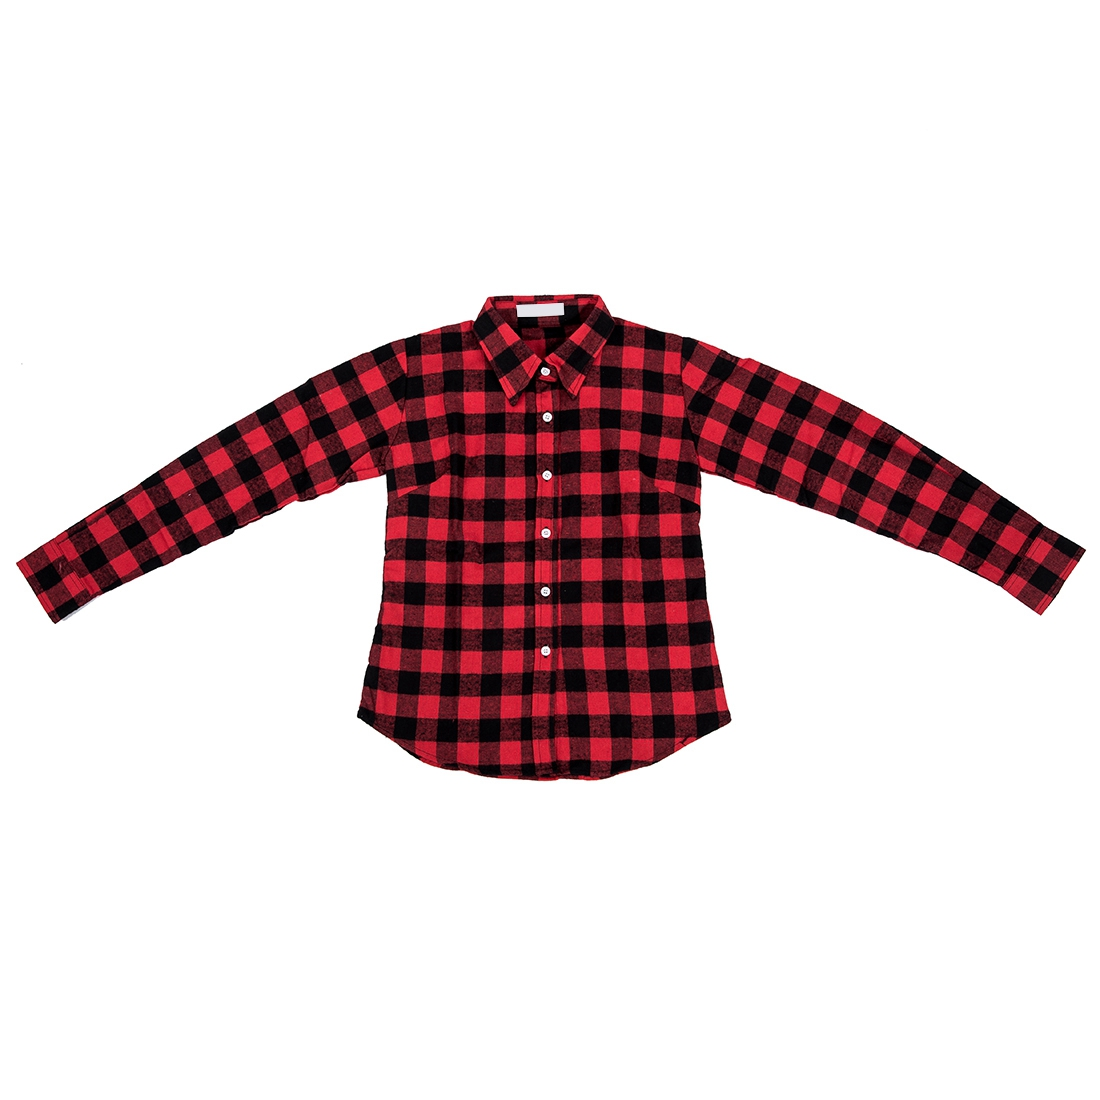 Cs498 womens shirt flannel shirts tops blouse red black Womens red plaid shirts blouses